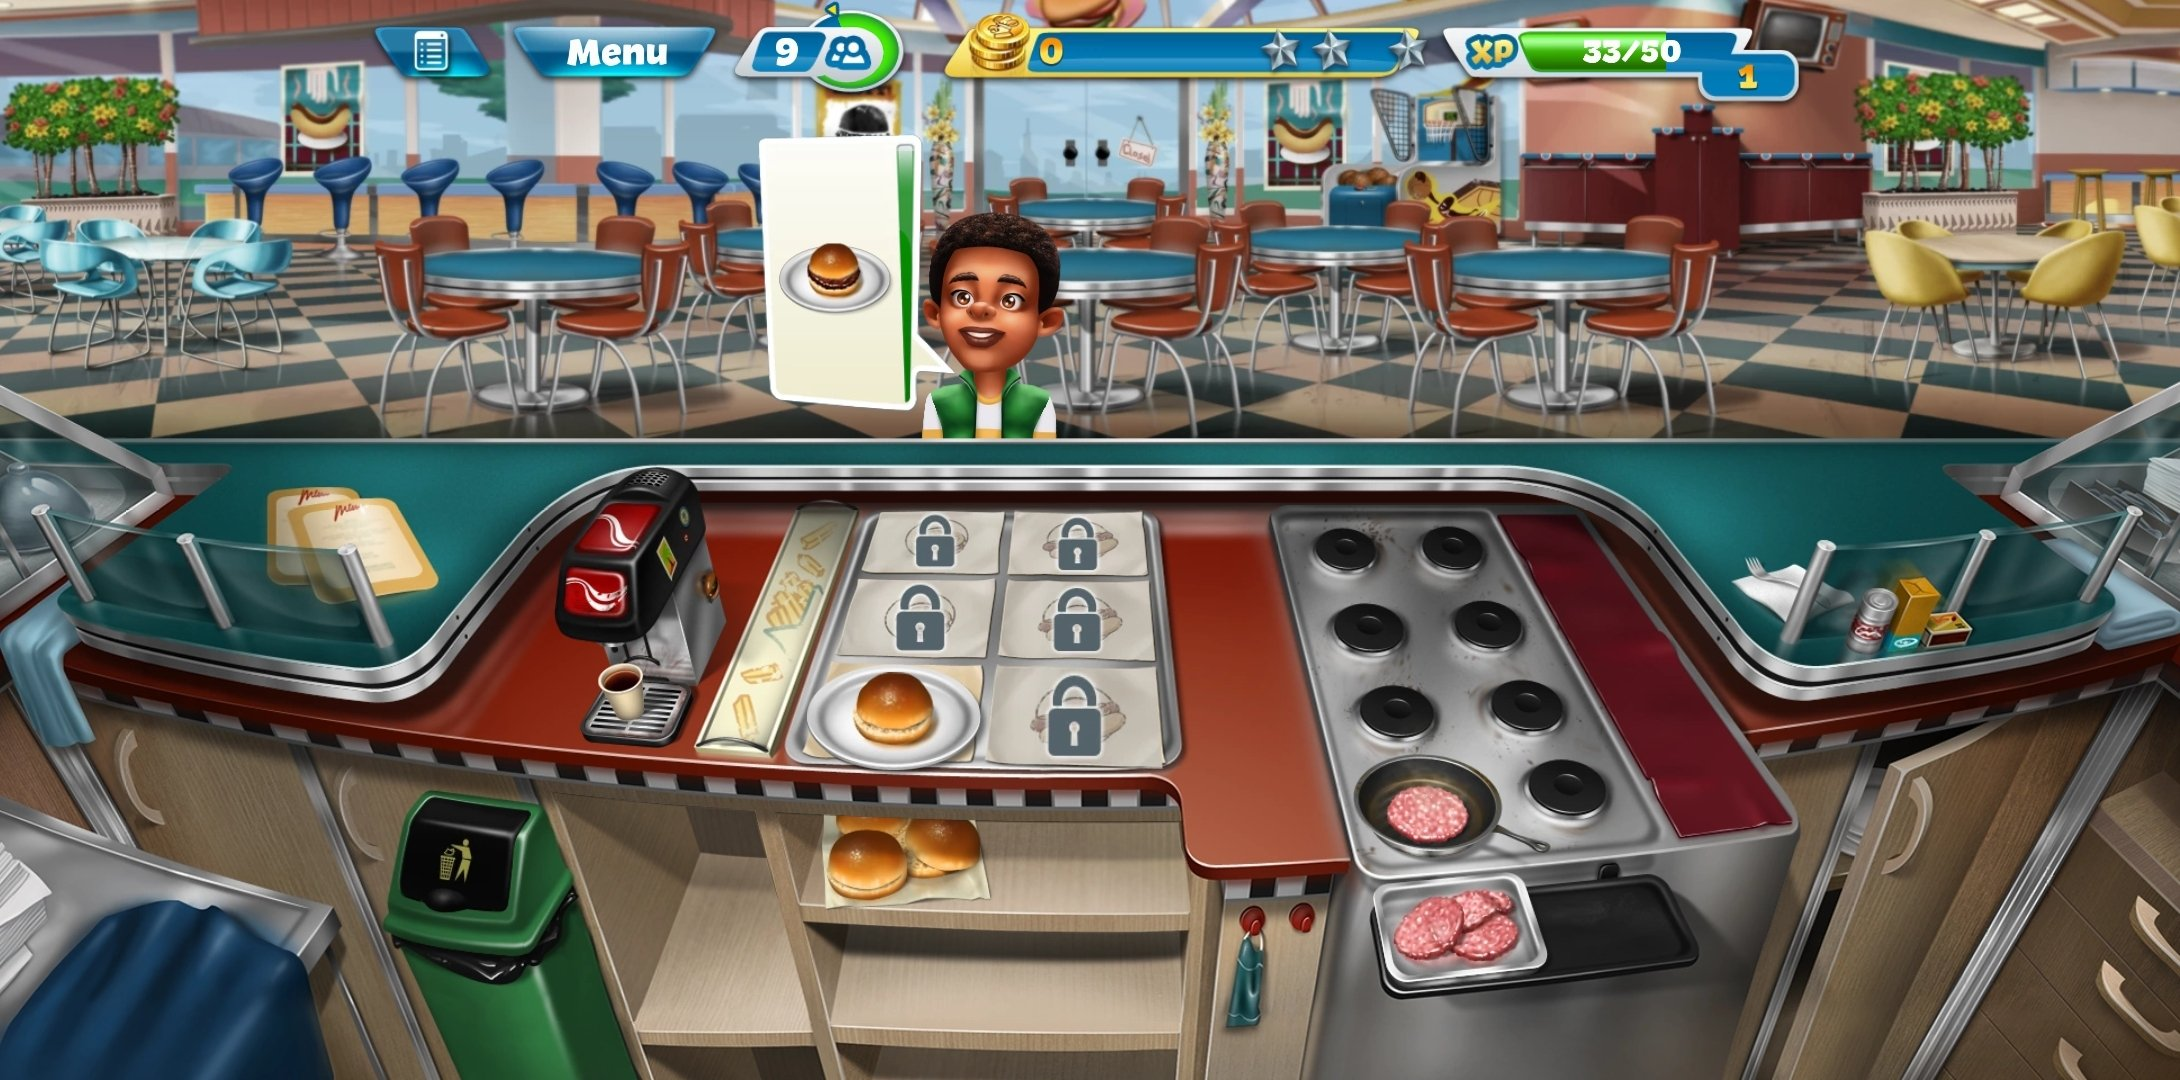 Cooking Fever Android image 6